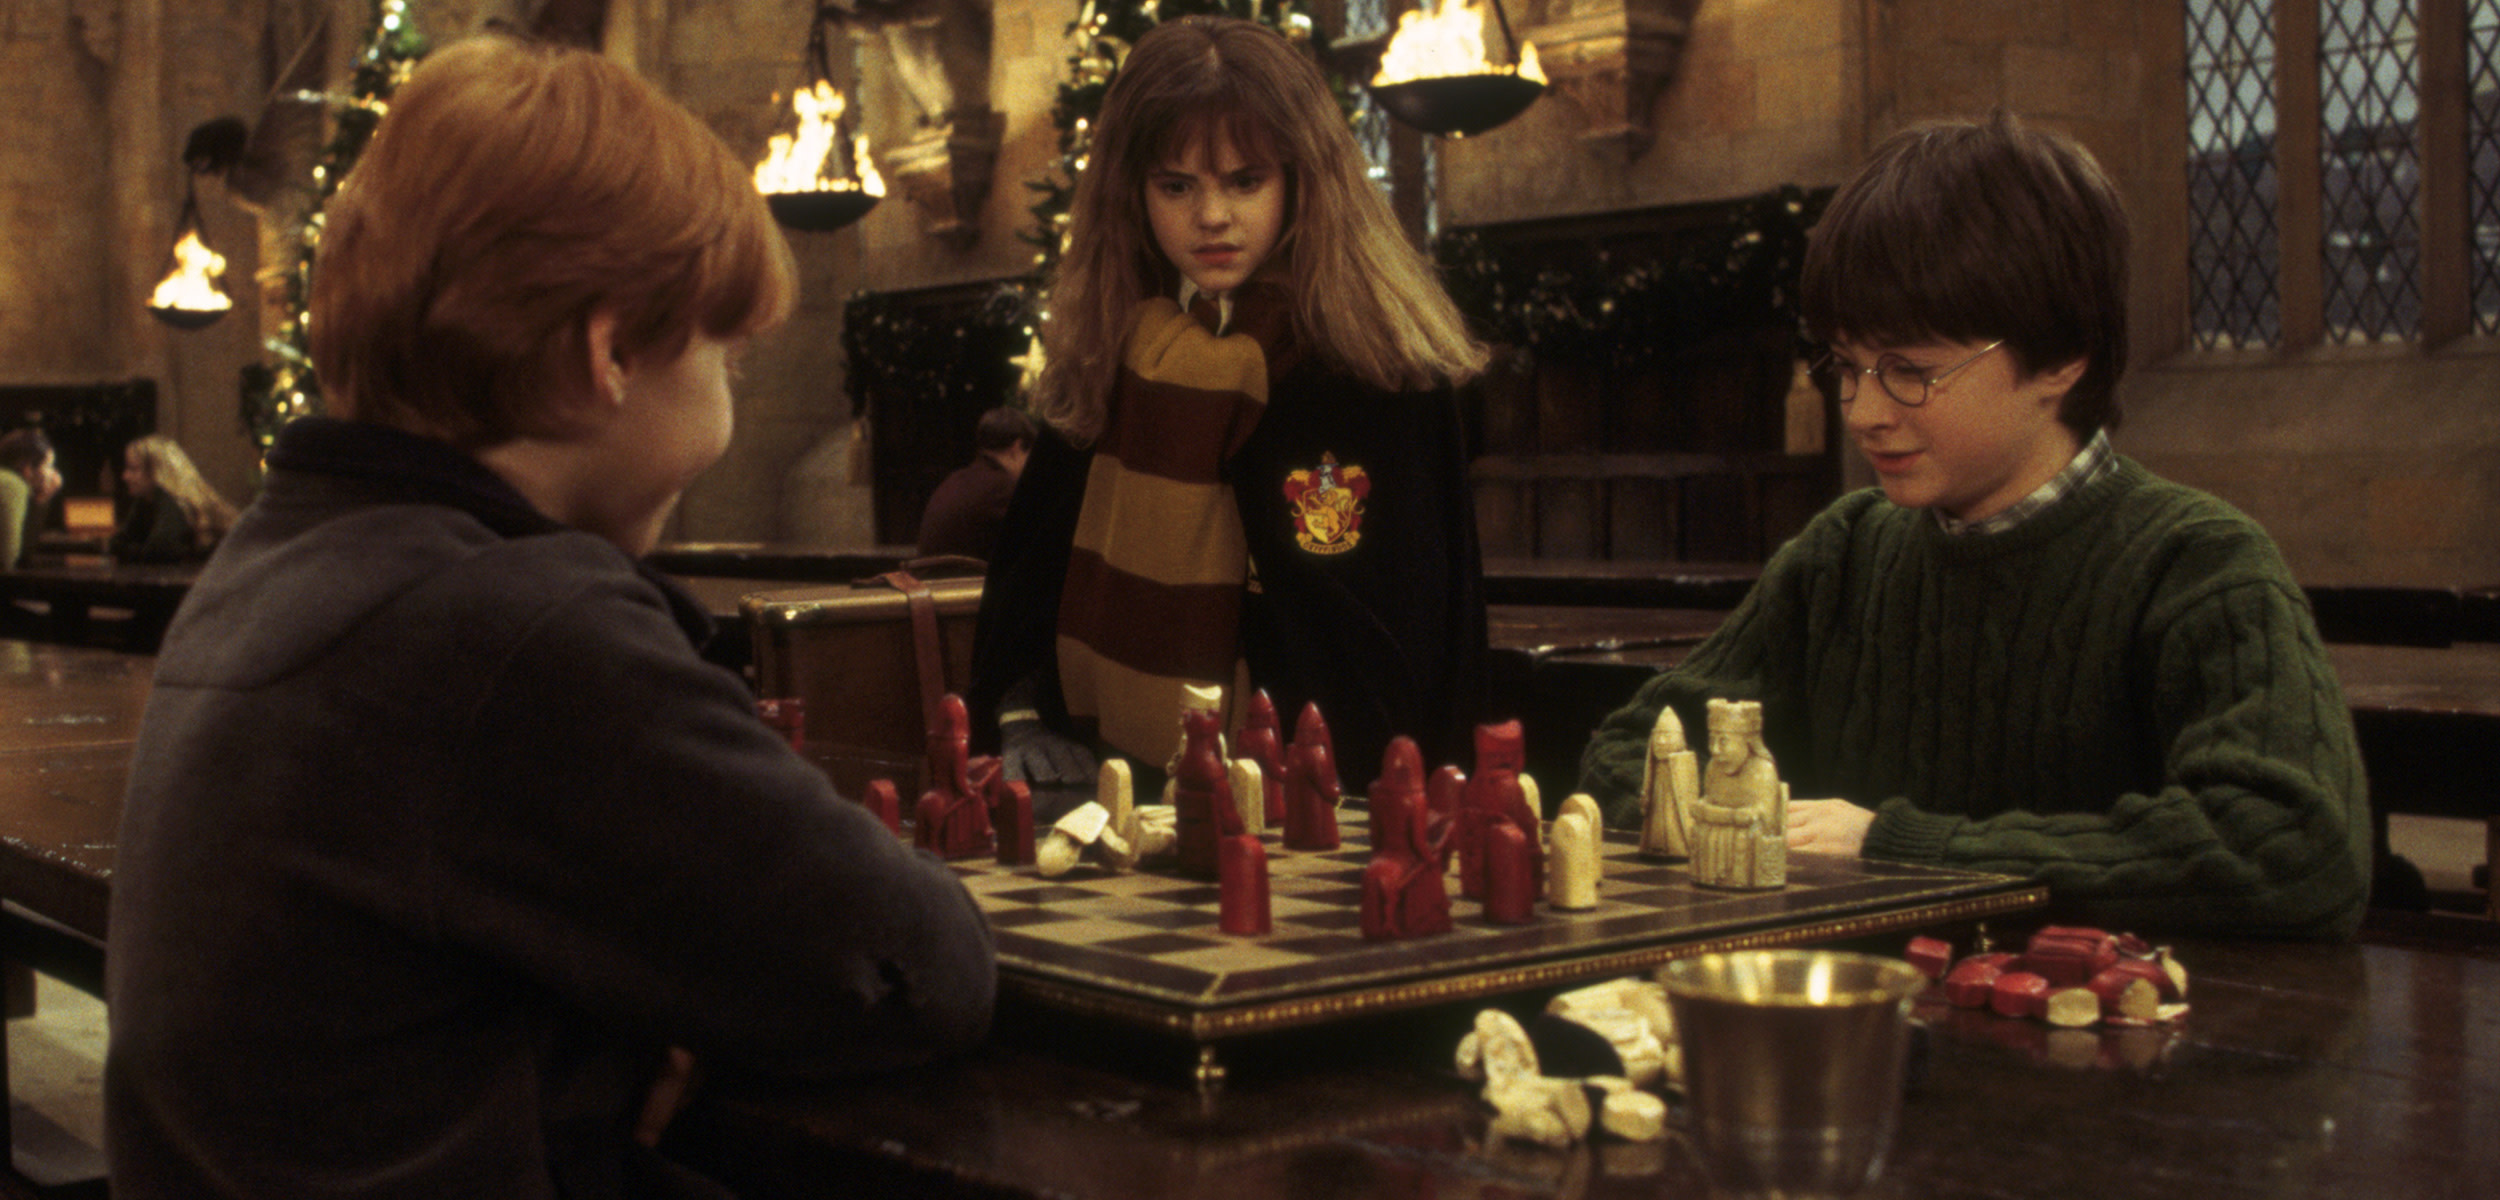 HP-F1-harry-ron-hermione-chess-christmas